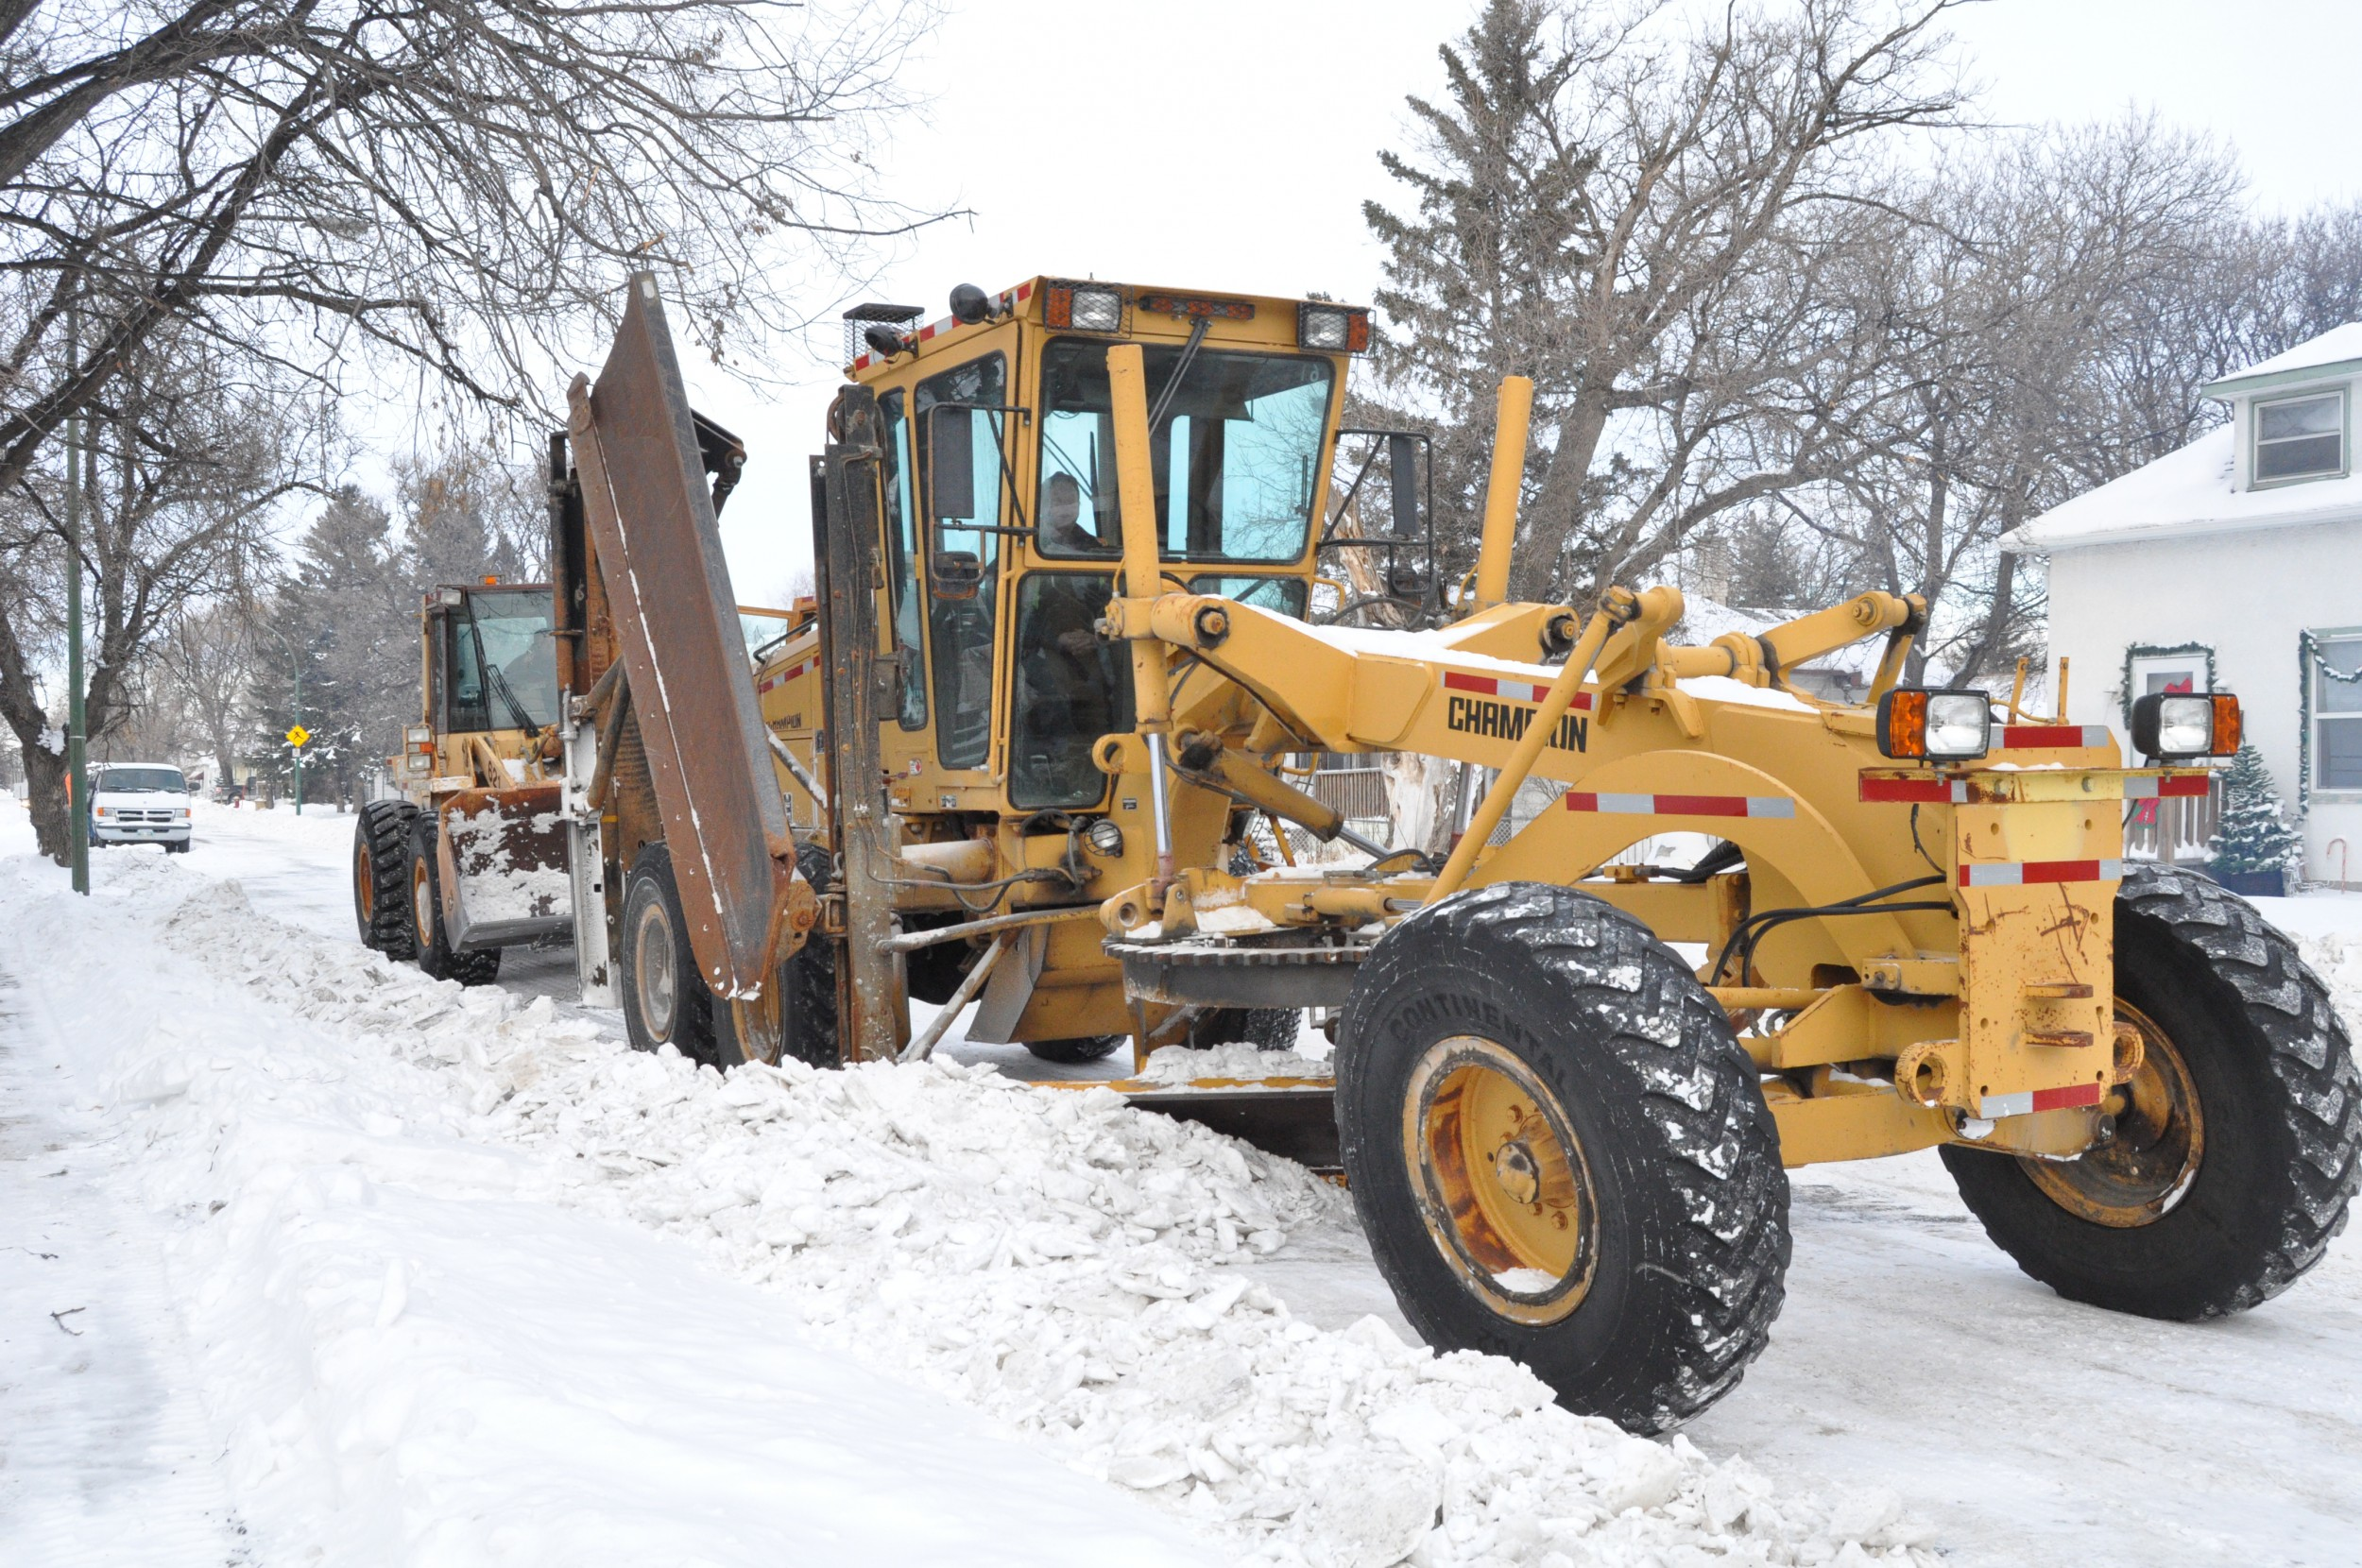 Winter Lawn Tips: Snow Plow Damage - Featured Image